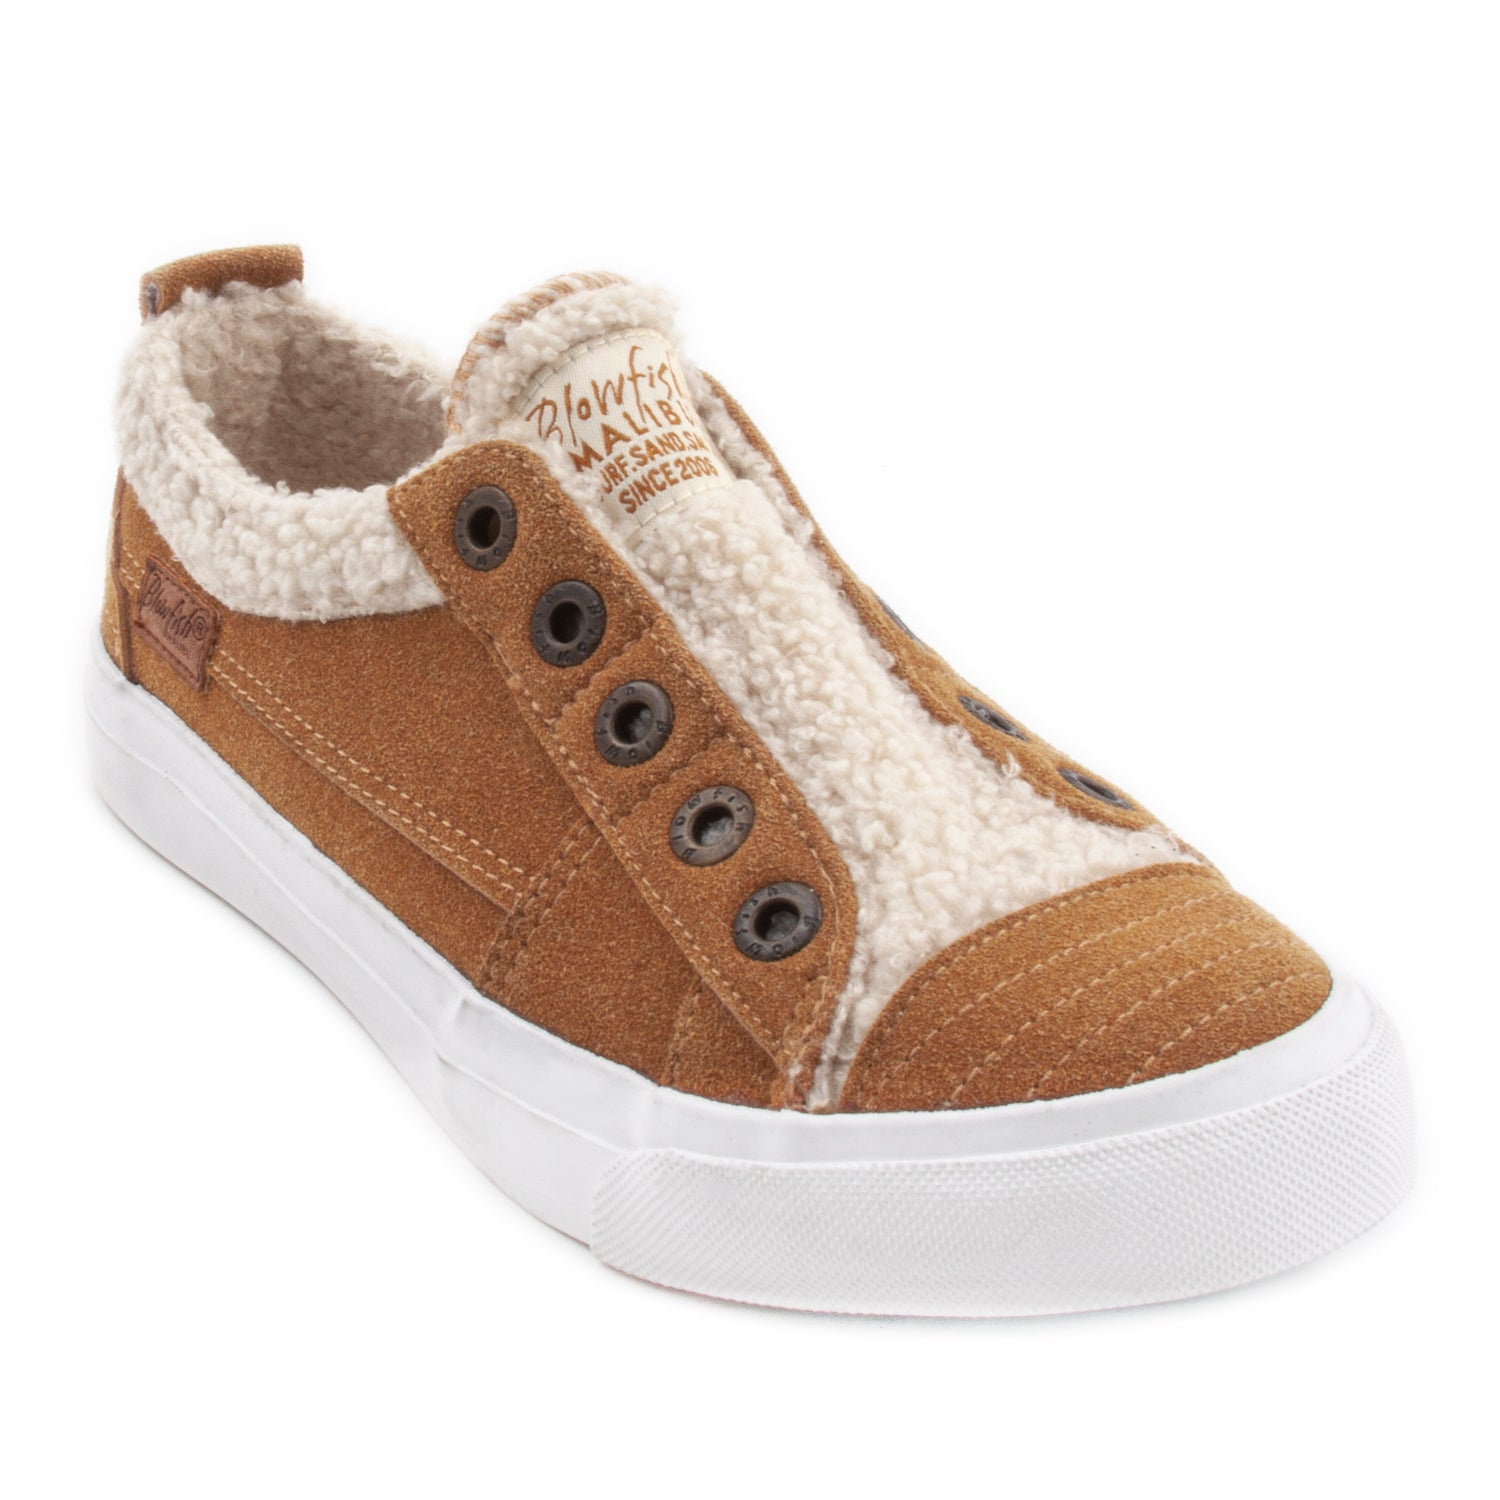 'Blowfish Malibu' ZS-0578SH 261 - Women's Low-Rise Sneaker - Carmel